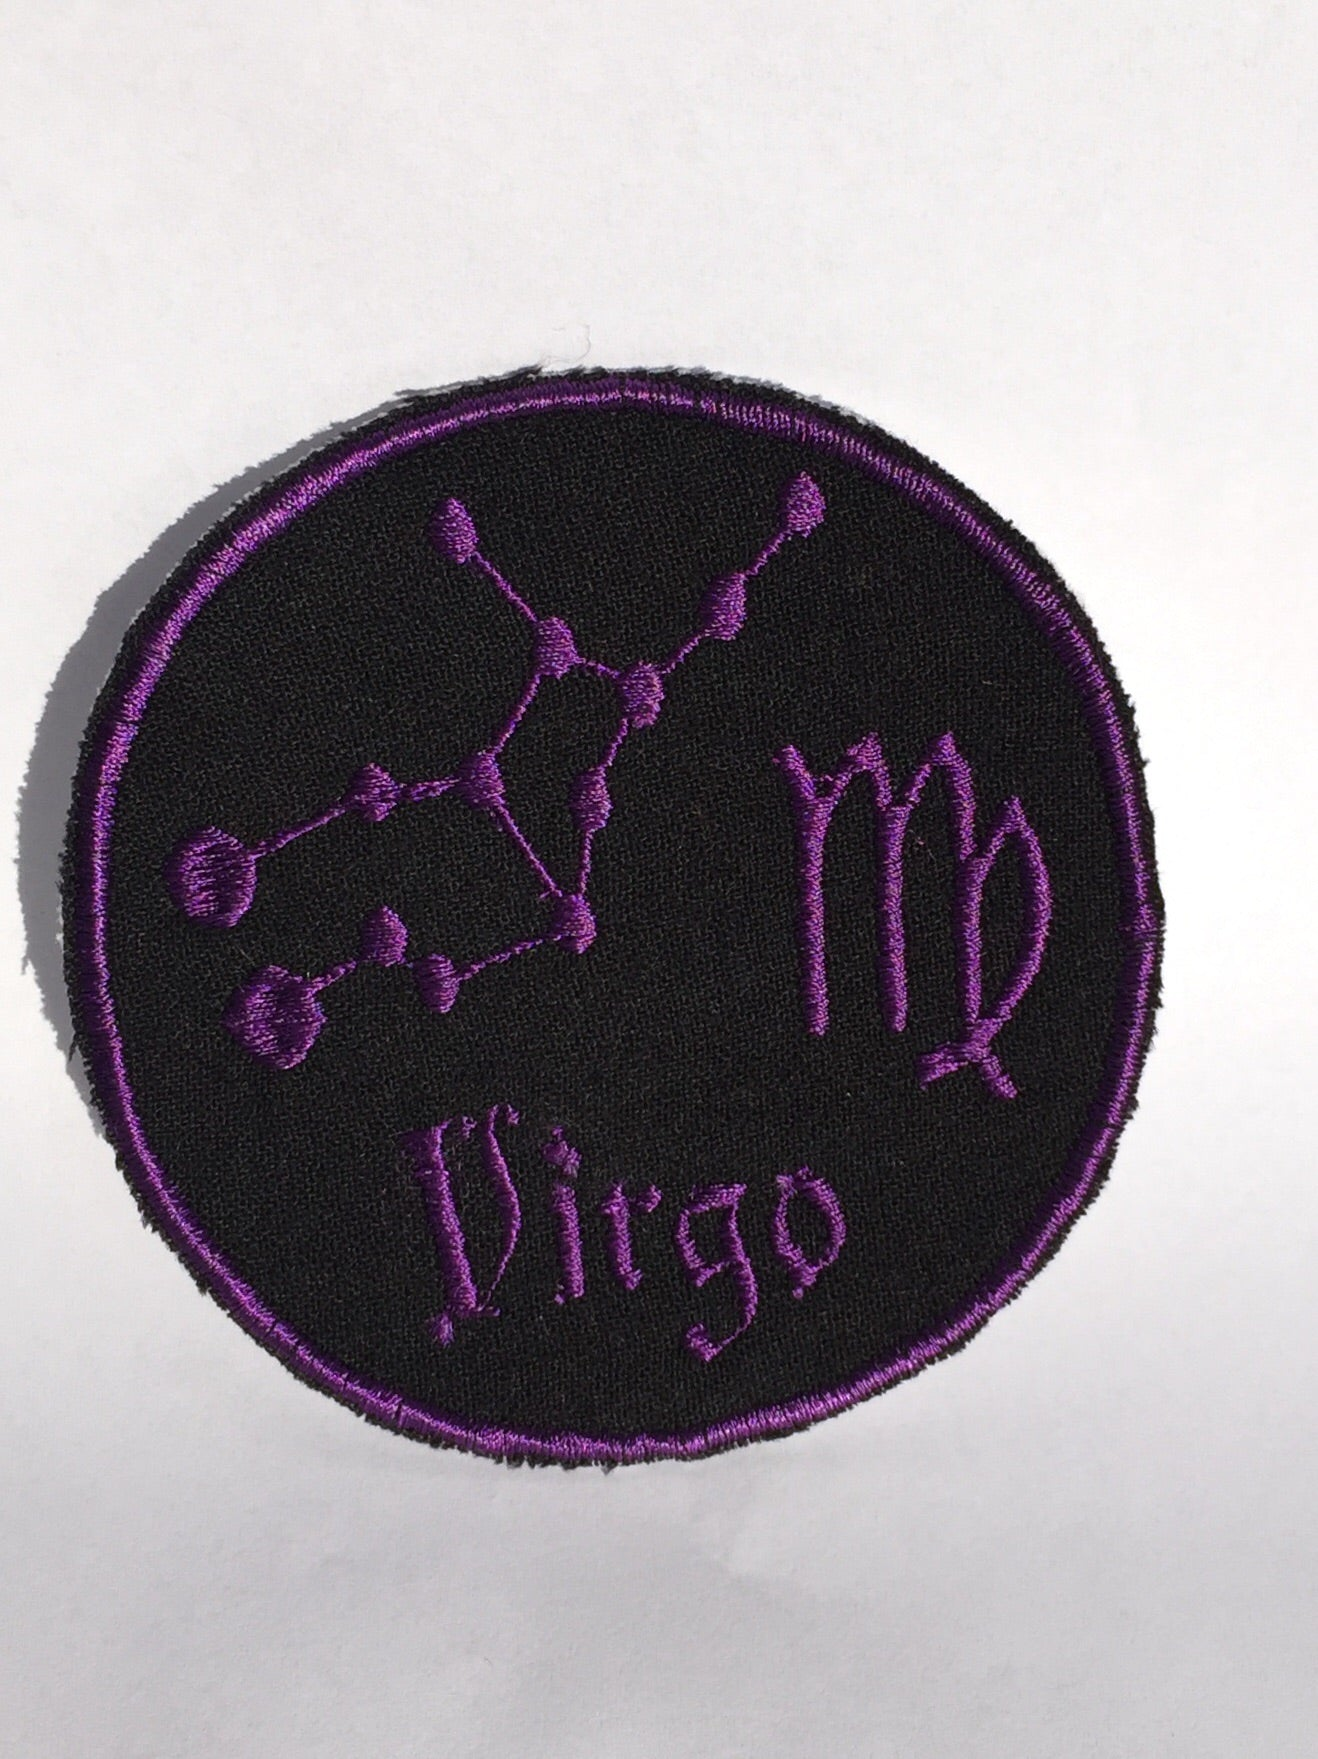 Virgo Patch